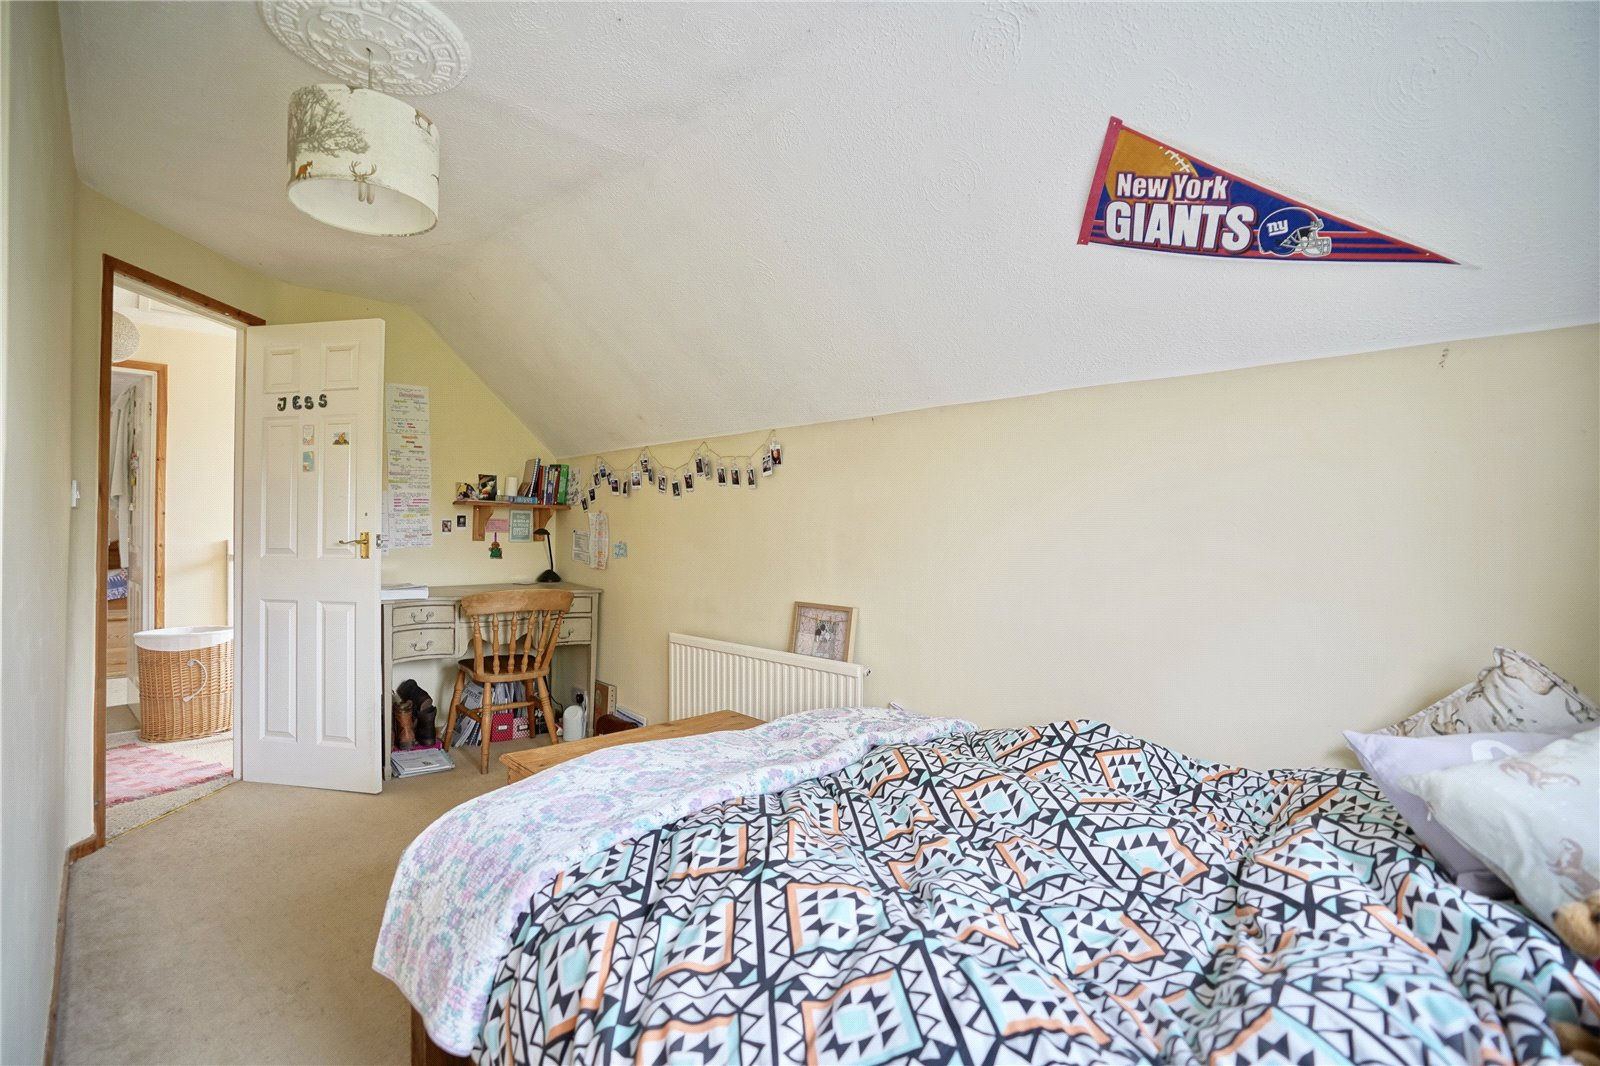 3 bed house for sale in Hemingford Grey, PE28 9BS  - Property Image 11